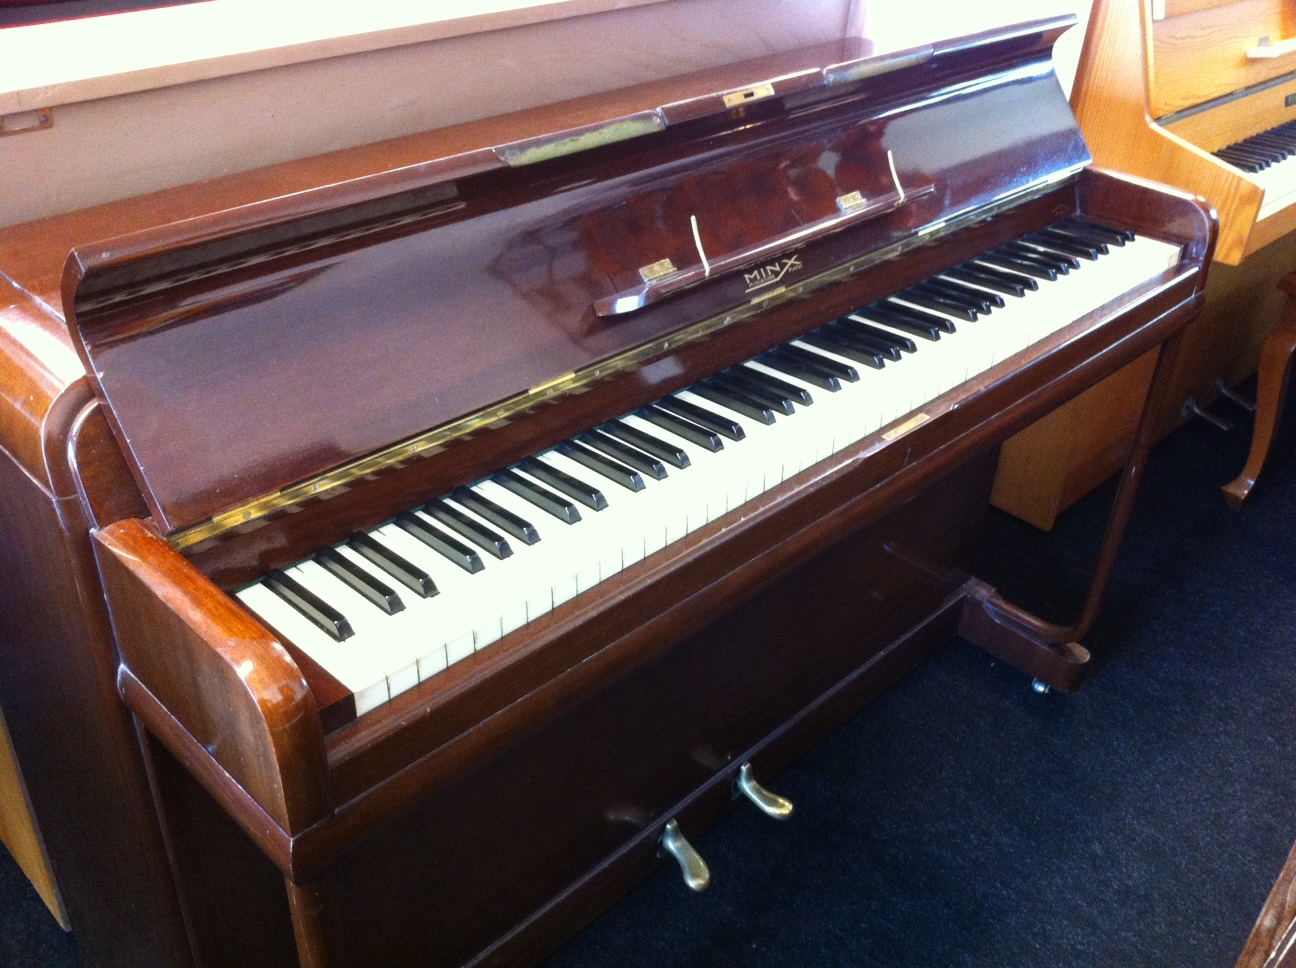 Kemble Minx Piano